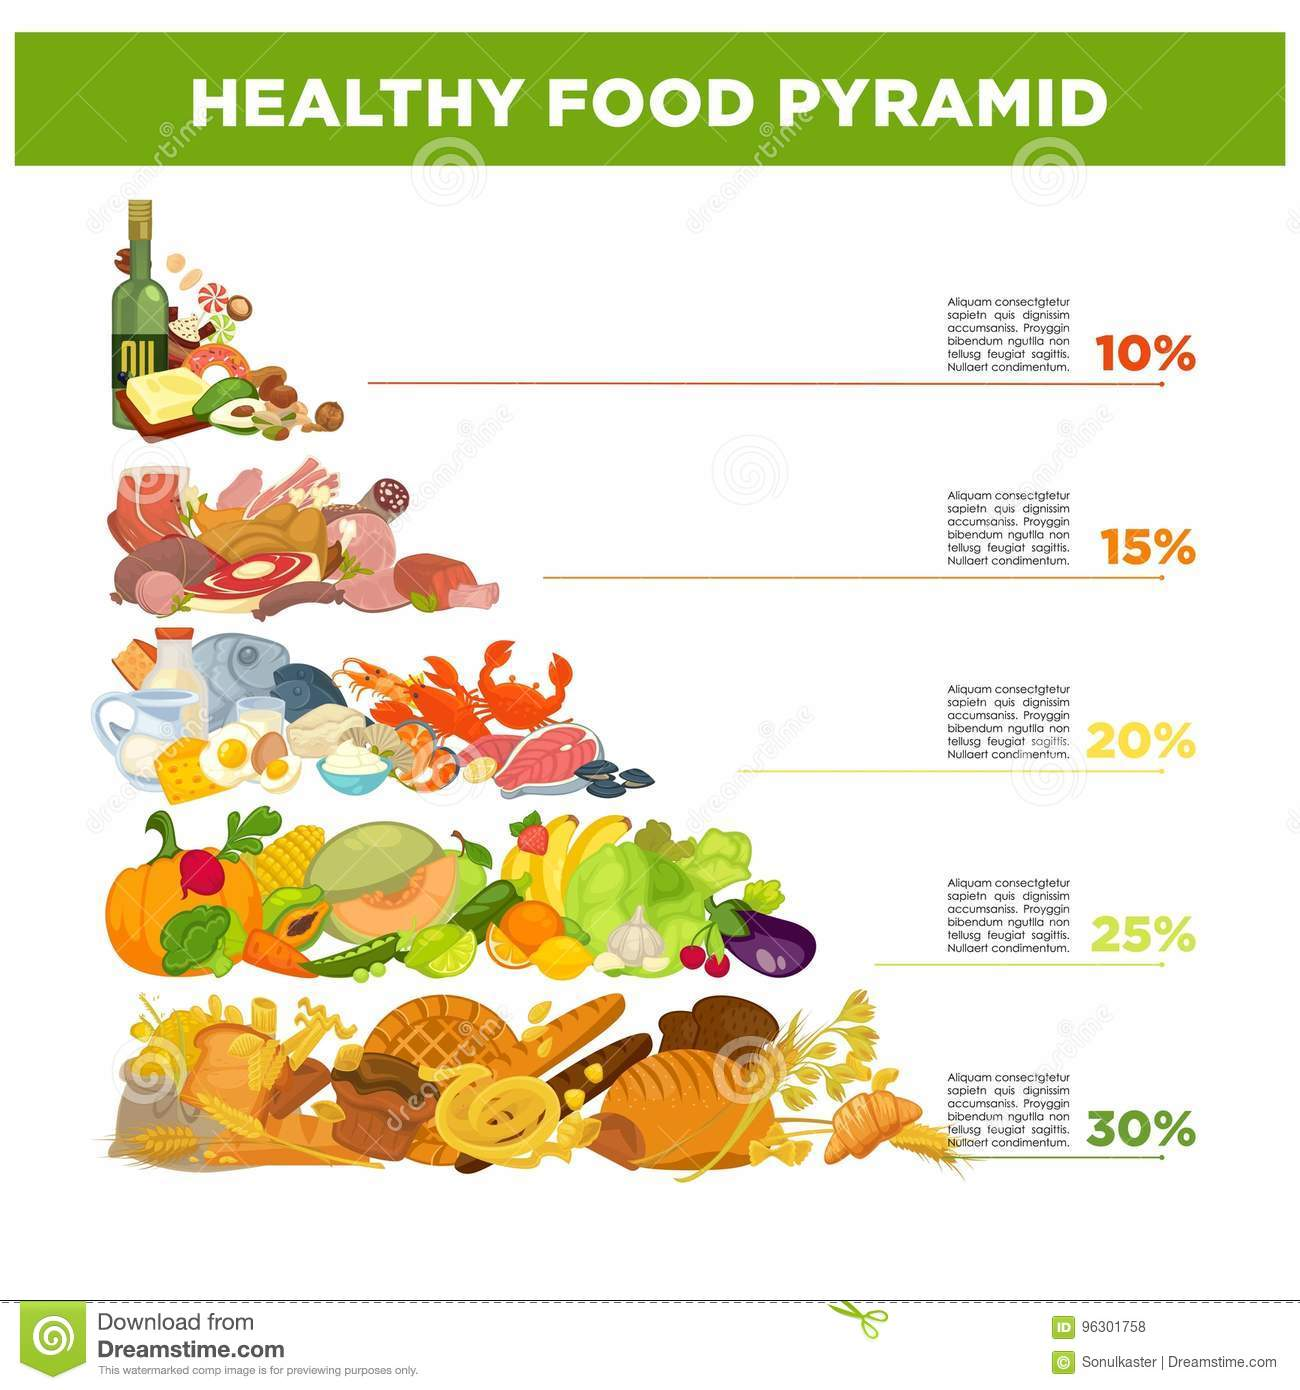 Healthy Food Pyramid With Percentage And Small Description Stock Vector Illustration Of Cereal Energy 96301758